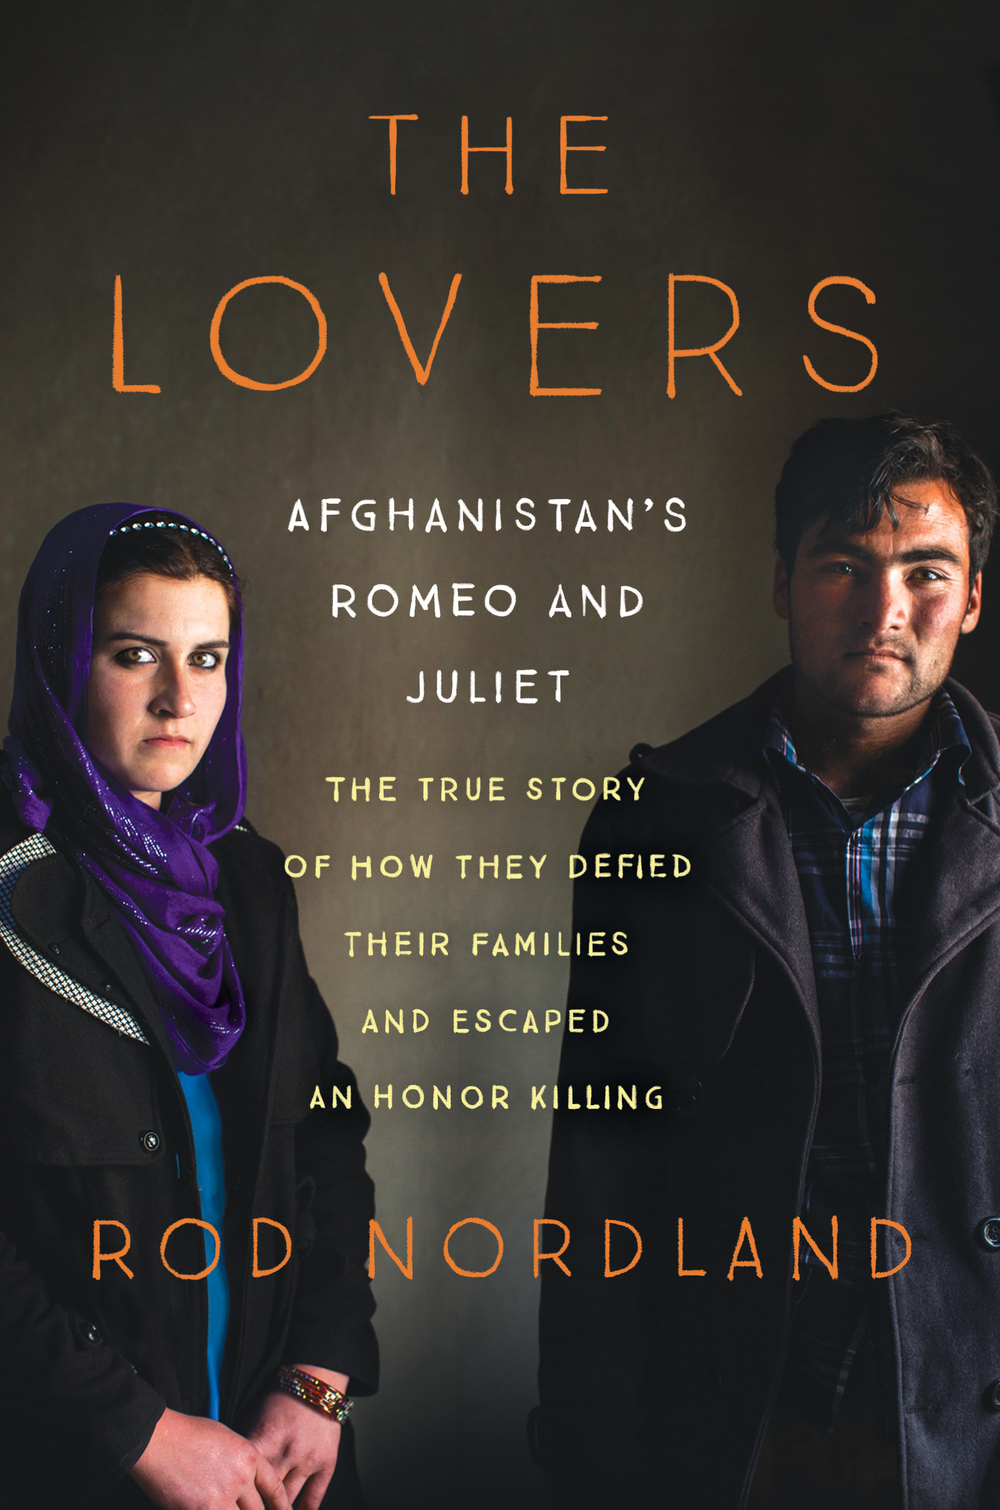 BOOKS : THE LOVERS, AFGHANISTAN'S ROMEO AND JULIET